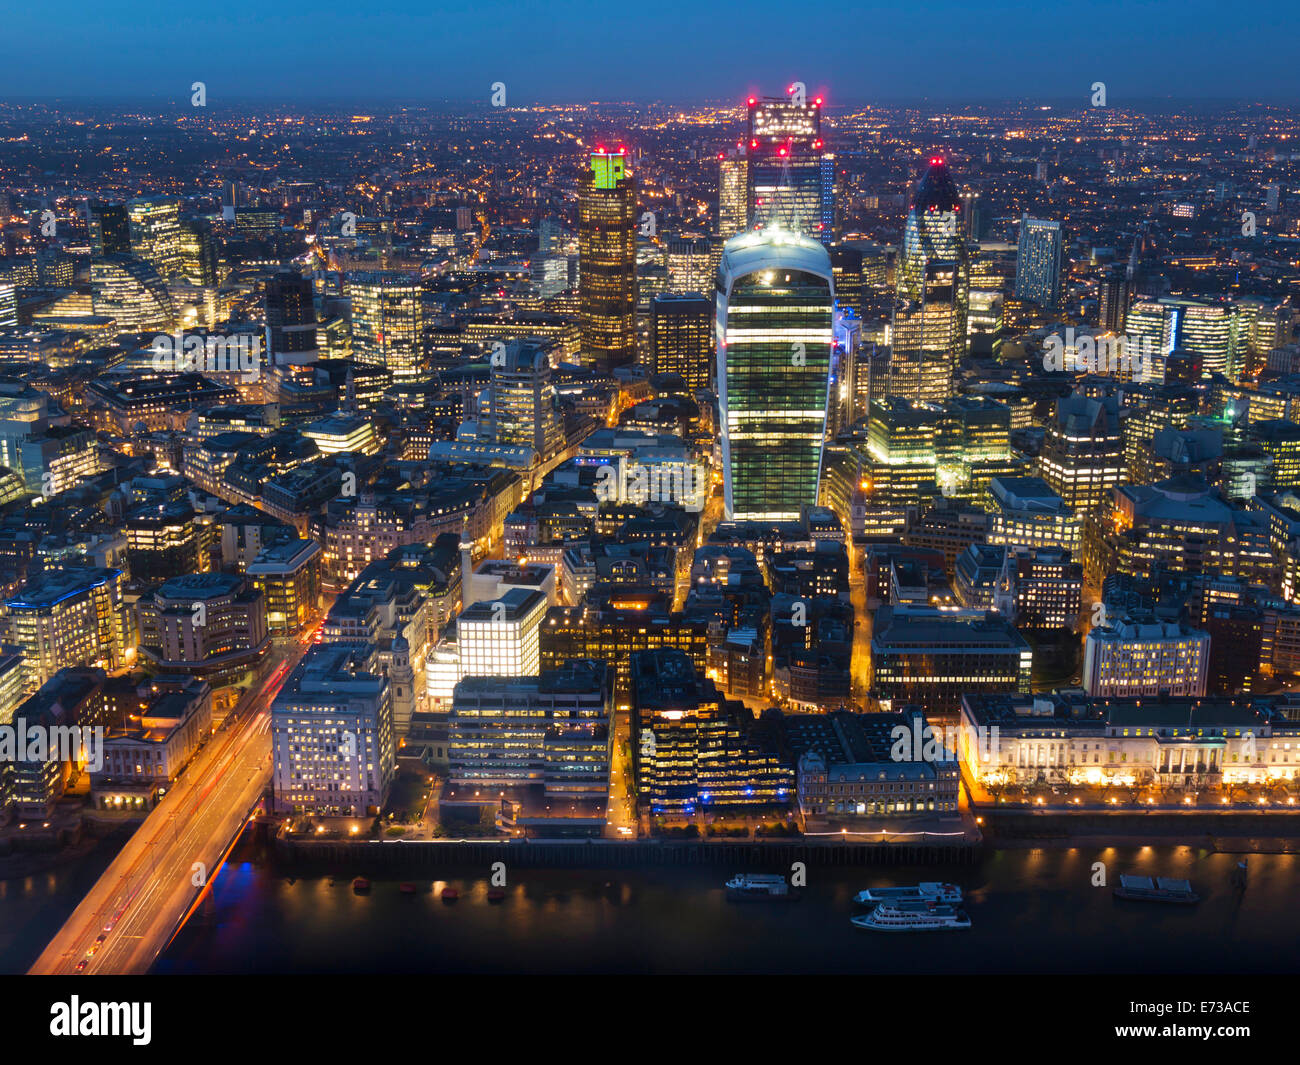 Aerial London Cityscape dominated by Walkie Talkie tower at dusk, London, England, United Kingdom, Europe - Stock Image